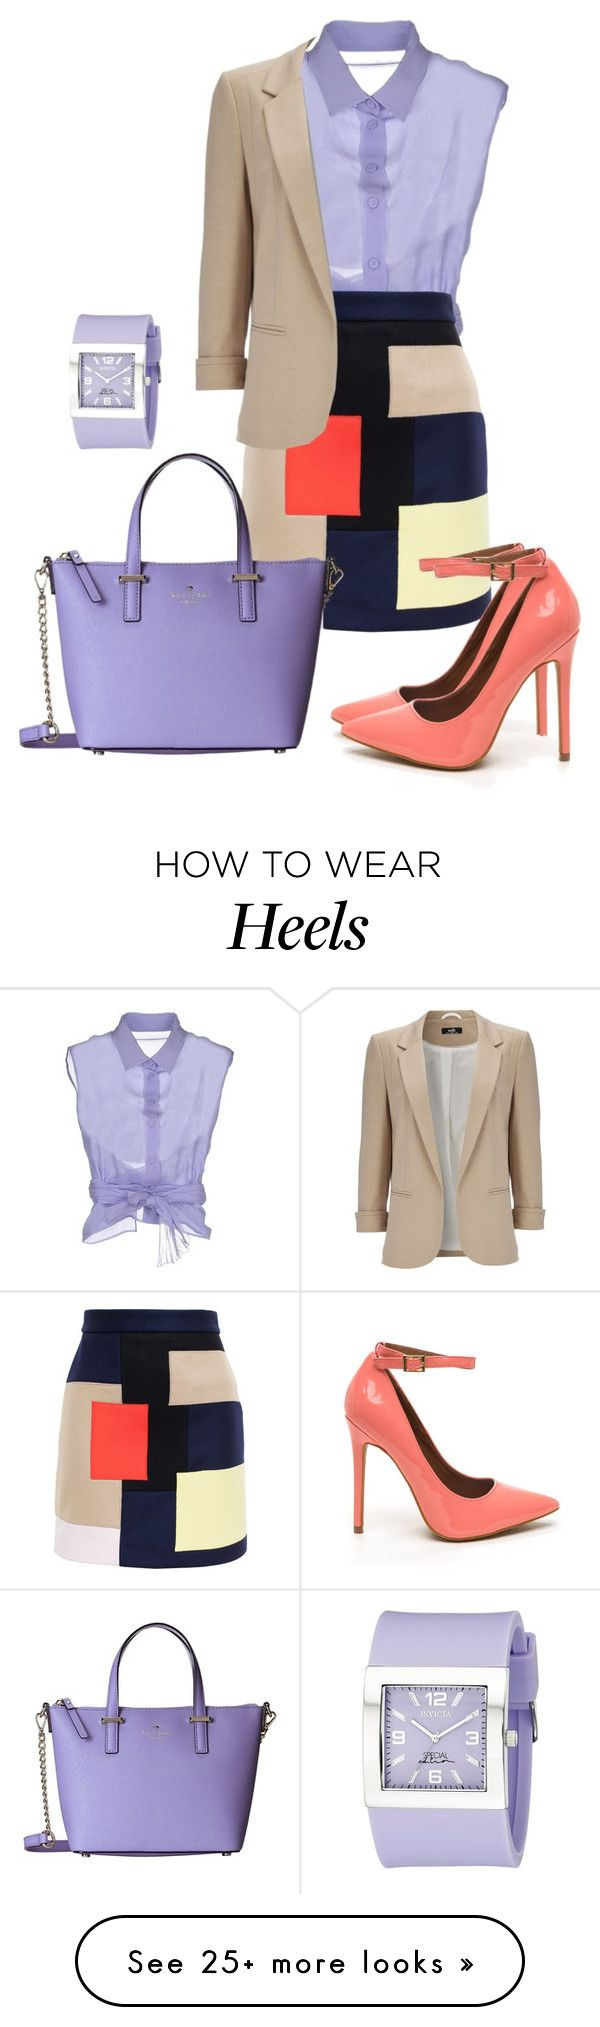 """Без названия #117"" by velikorodnayam on Polyvore featuring Alberta Ferretti, MSGM, Wallis, Kate Spade and Invicta"